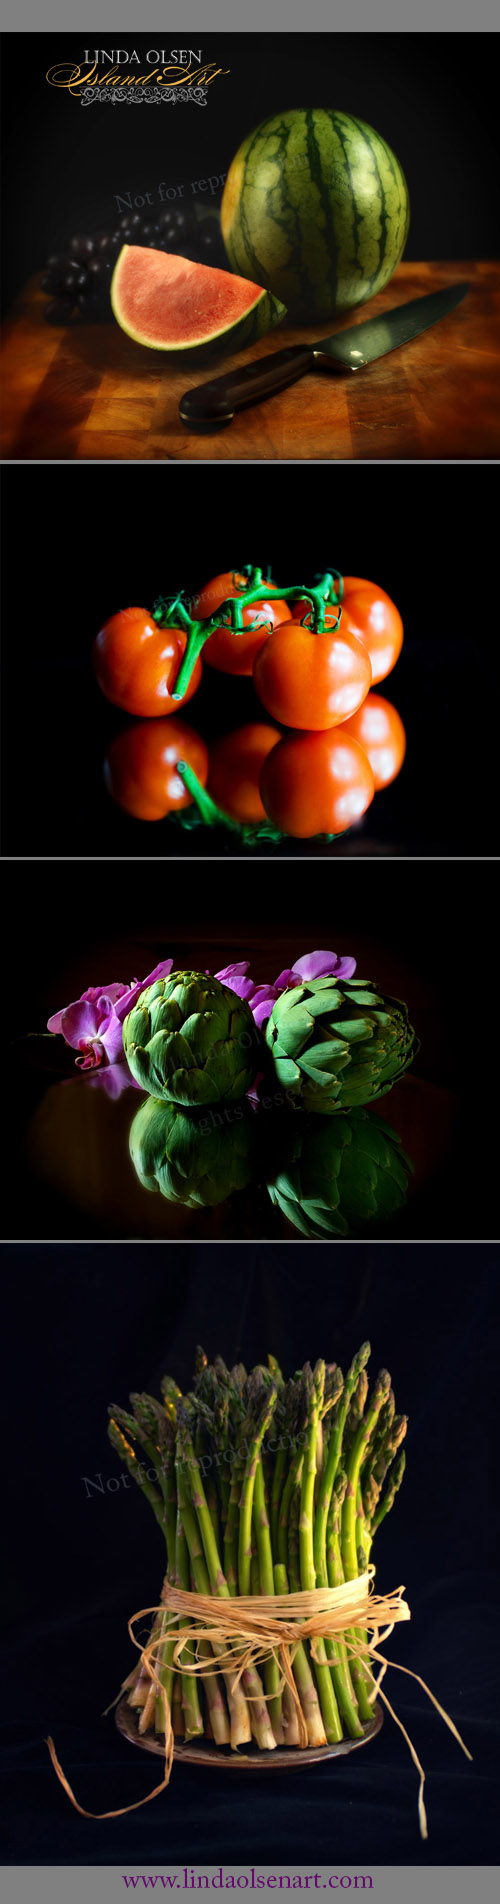 Since I do have a portrait studio, sometimes, I get excited about the food I am about to eat or setting up a still life display. It is the same principles for lighting as in photographing a person... but I generally use less soft boxes.